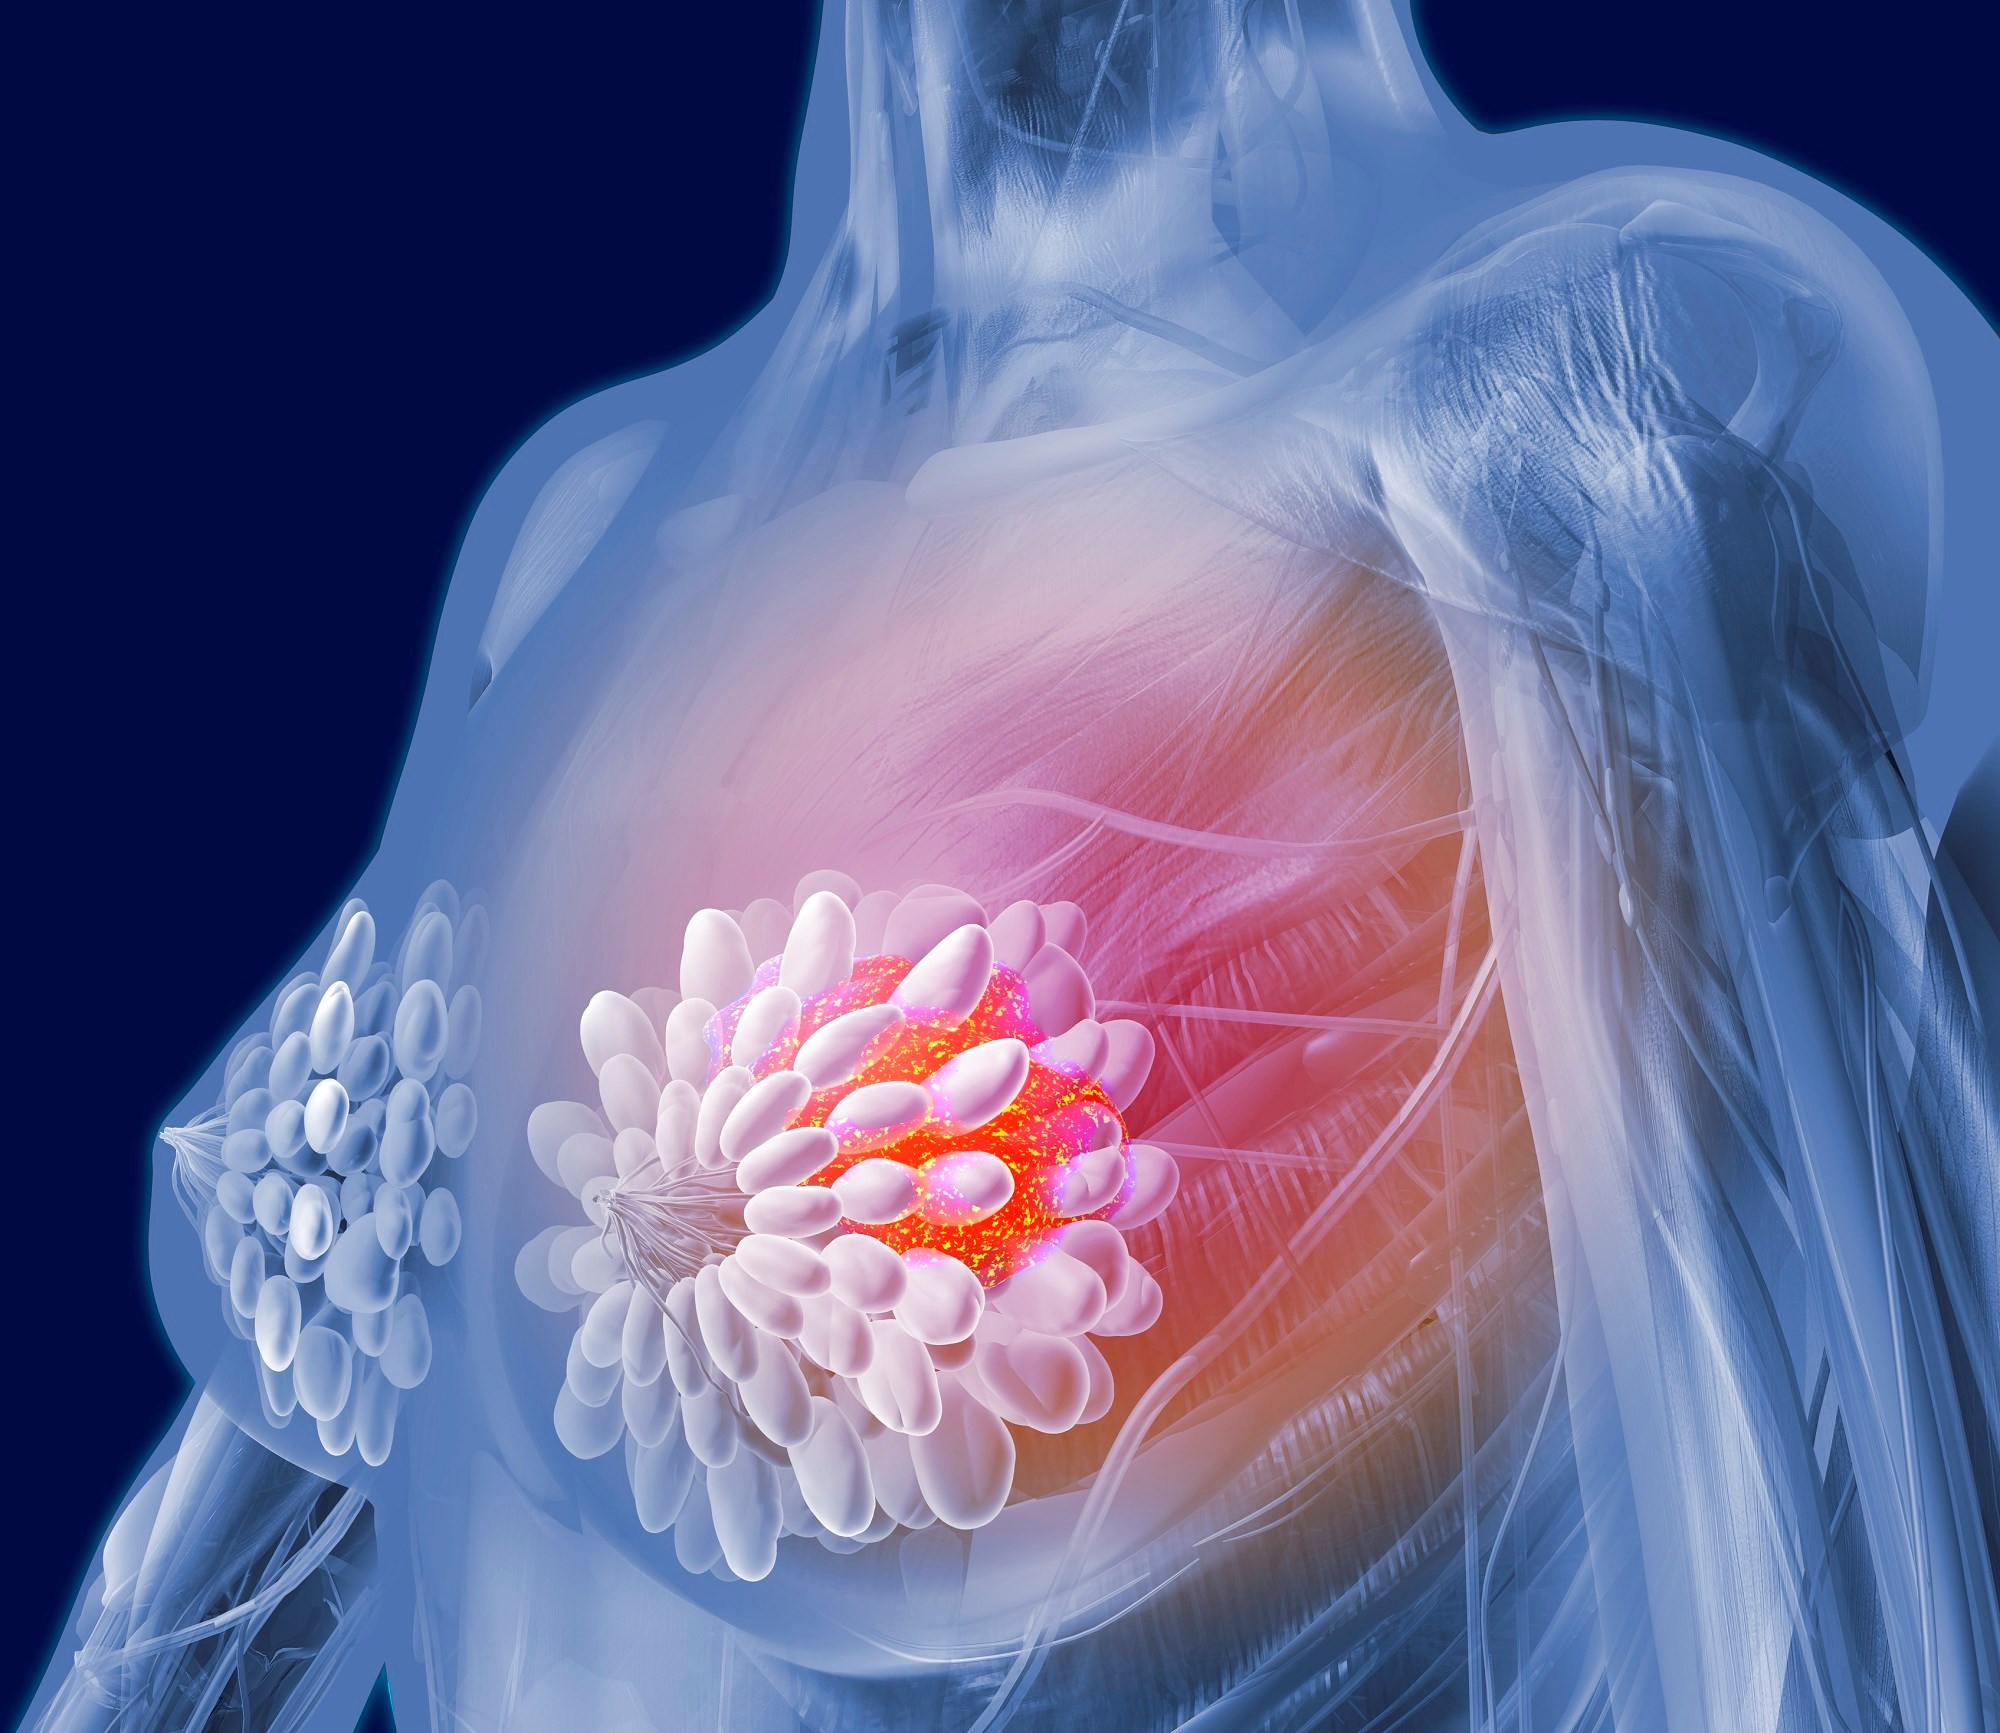 The number of women with breast implant-associated anaplastic large cell lymphoma (BIA-ALCL) now stands at 457, compared with 414 in the last report.